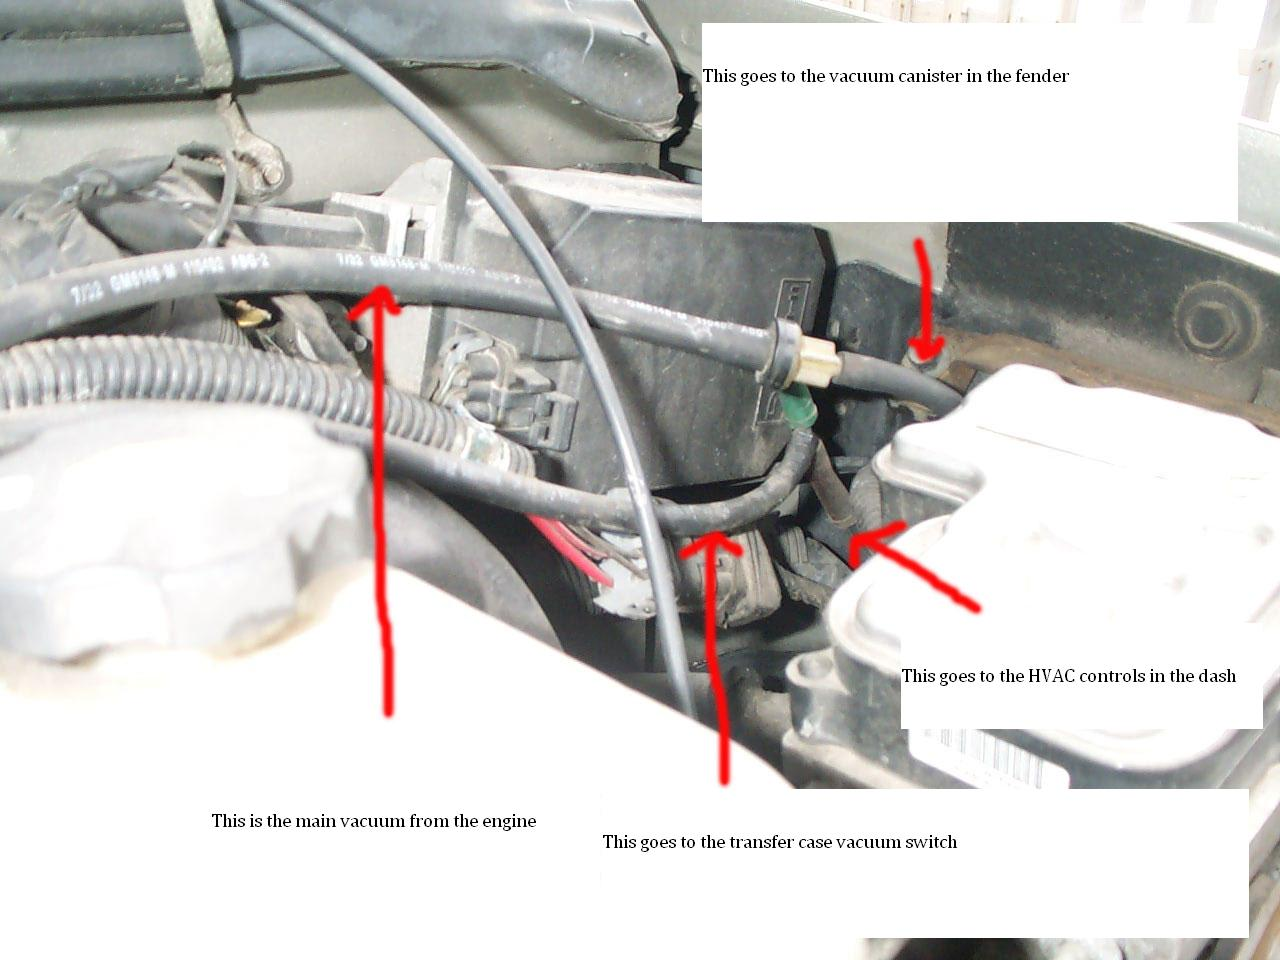 1971 CHEVROLET CHEVELLE MALIBU CUSTOM 2 DOOR COUPE 113454 as well Showthread besides 1678392 1967 327 300 Engine Pics besides 261842708788 in addition Entry. on sbc heater hose diagram